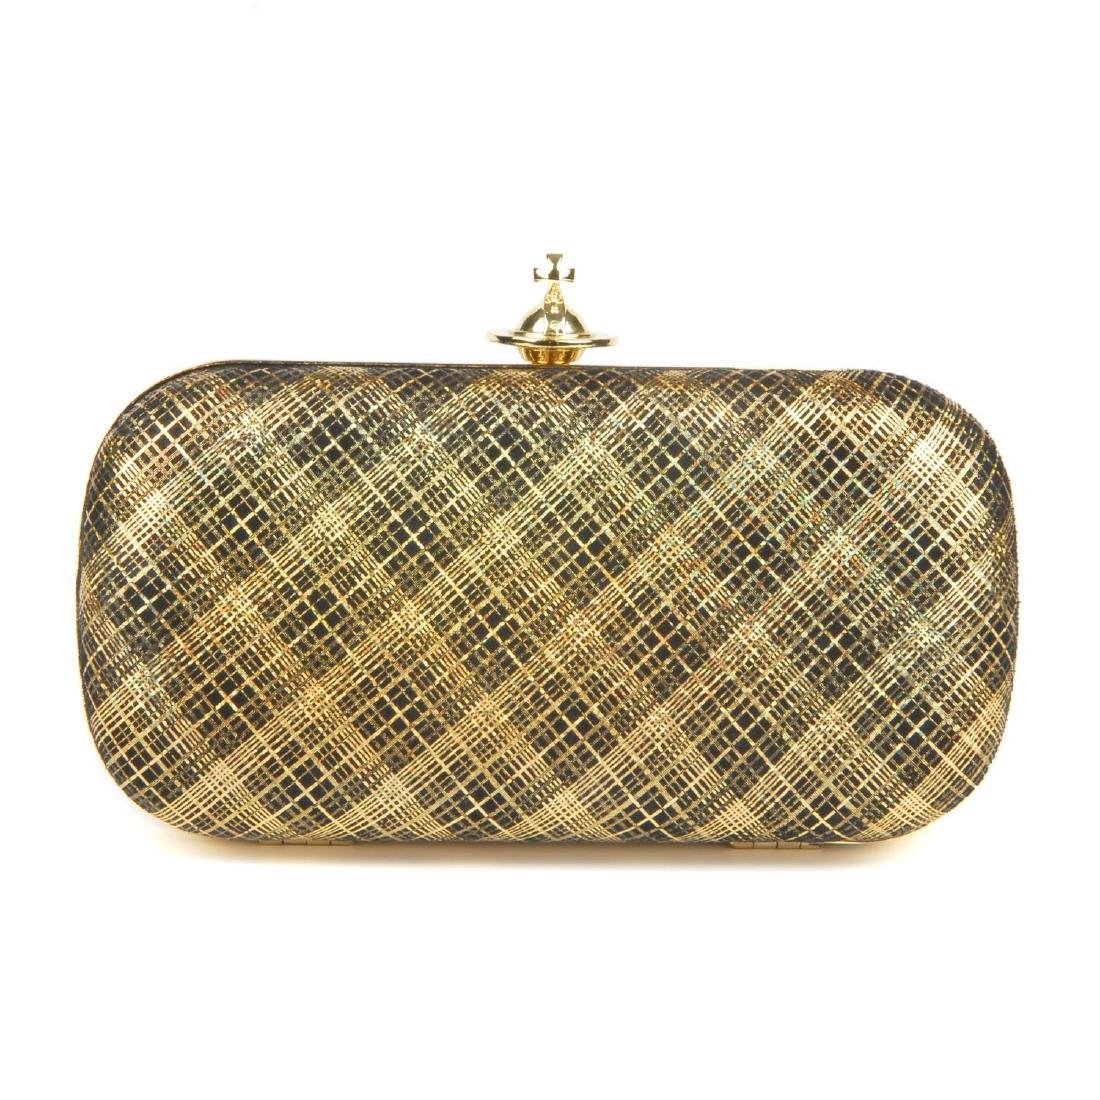 VIVIENNE WESTWOOD - a Galles plaid clutch. Designed